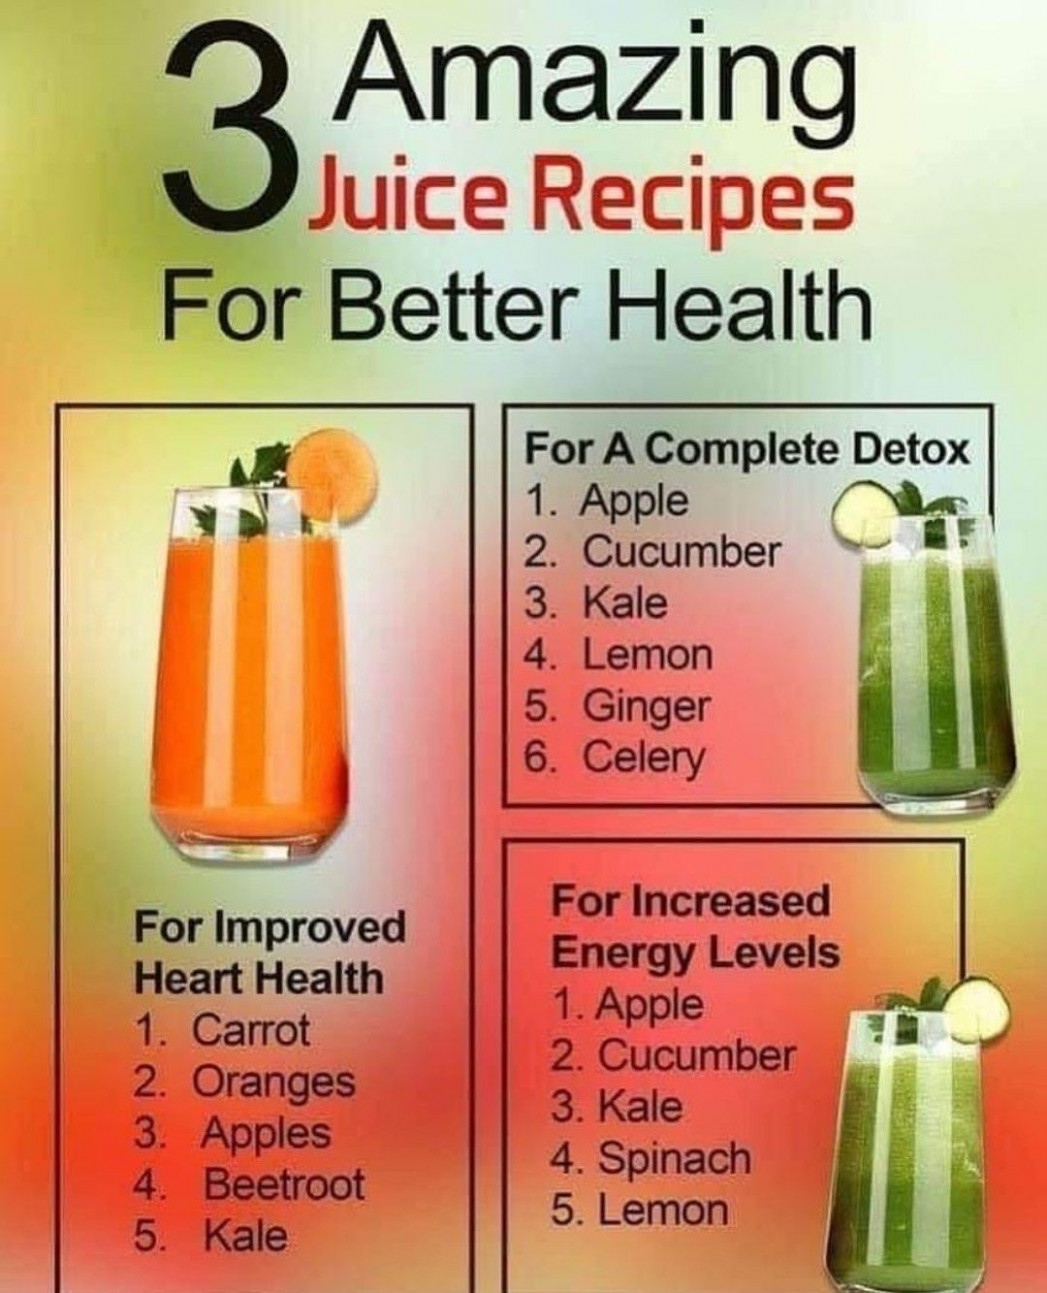 Pin on Detox Juice Recipes- Juices and Smoothies to Cleanse - healthy recipes juicer weight loss